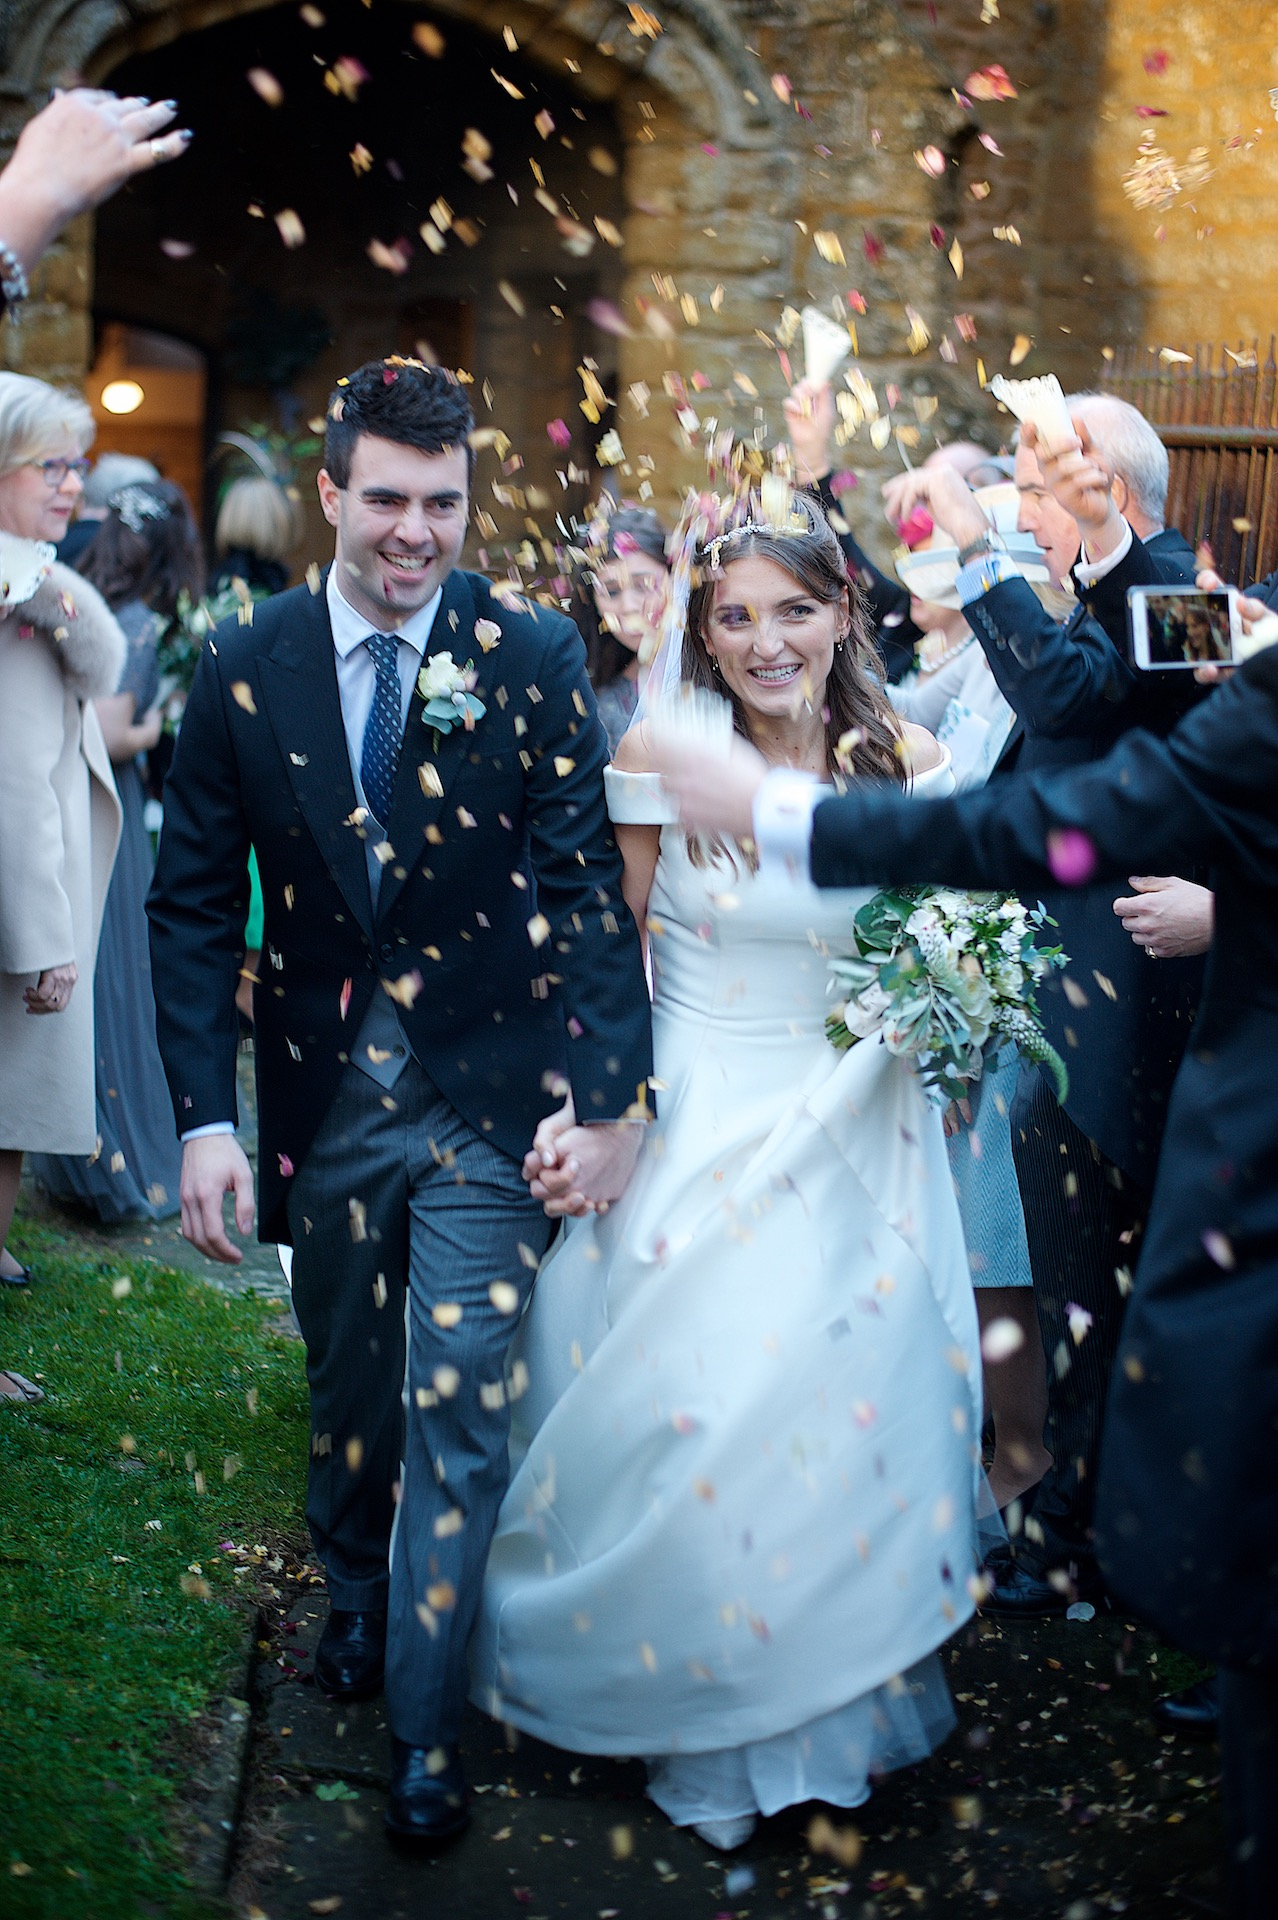 Bride and Groom Outside Church With Confetti